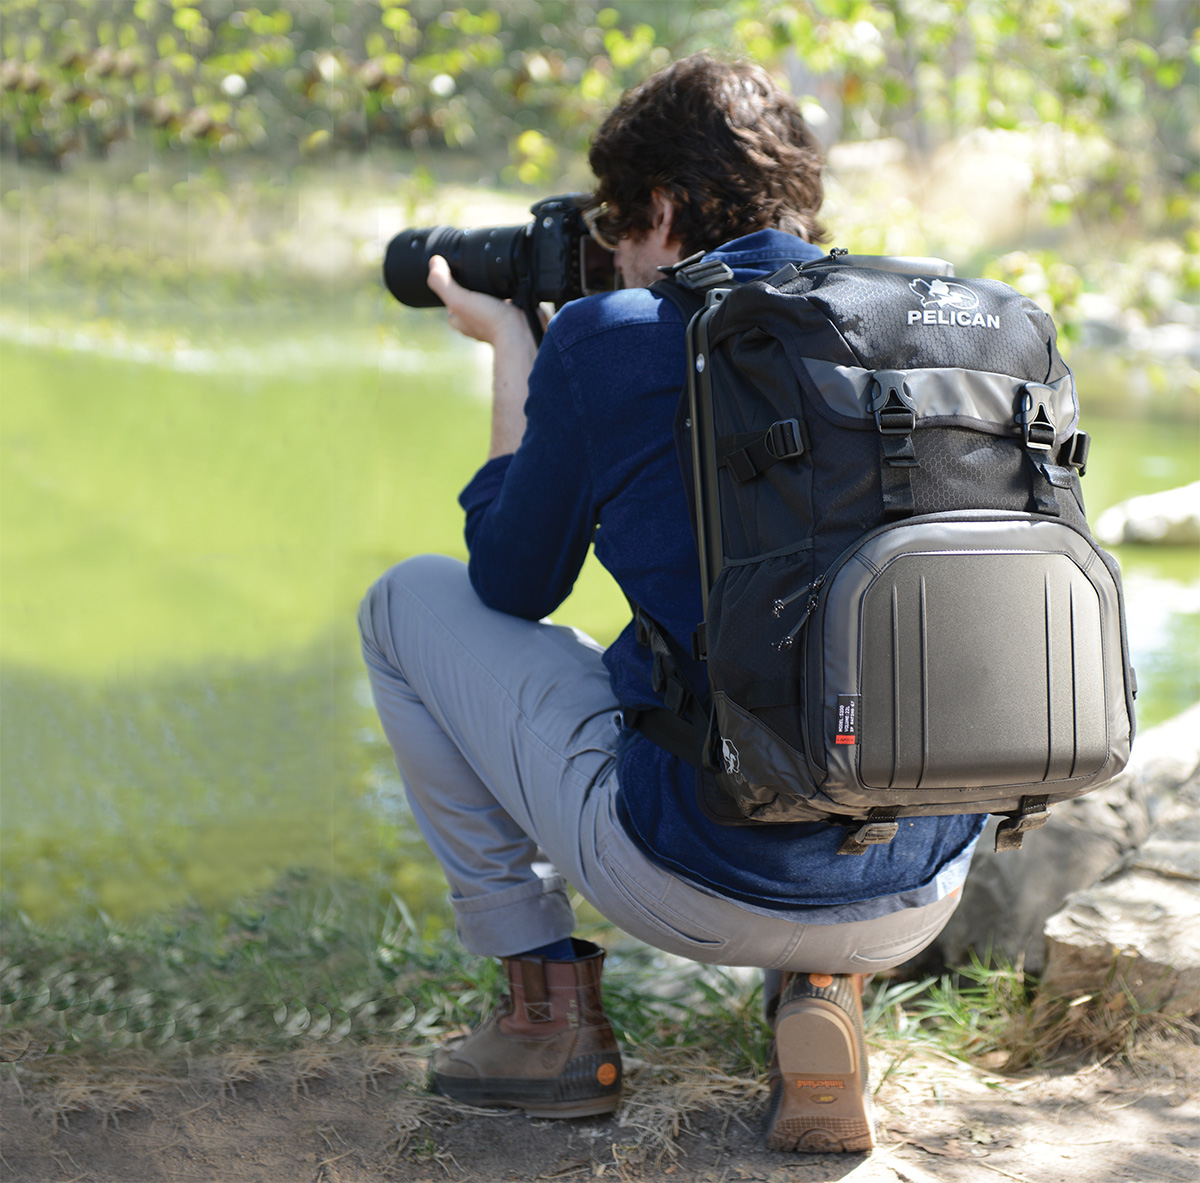 pelican peli products S130 quality usa camera protective backpack